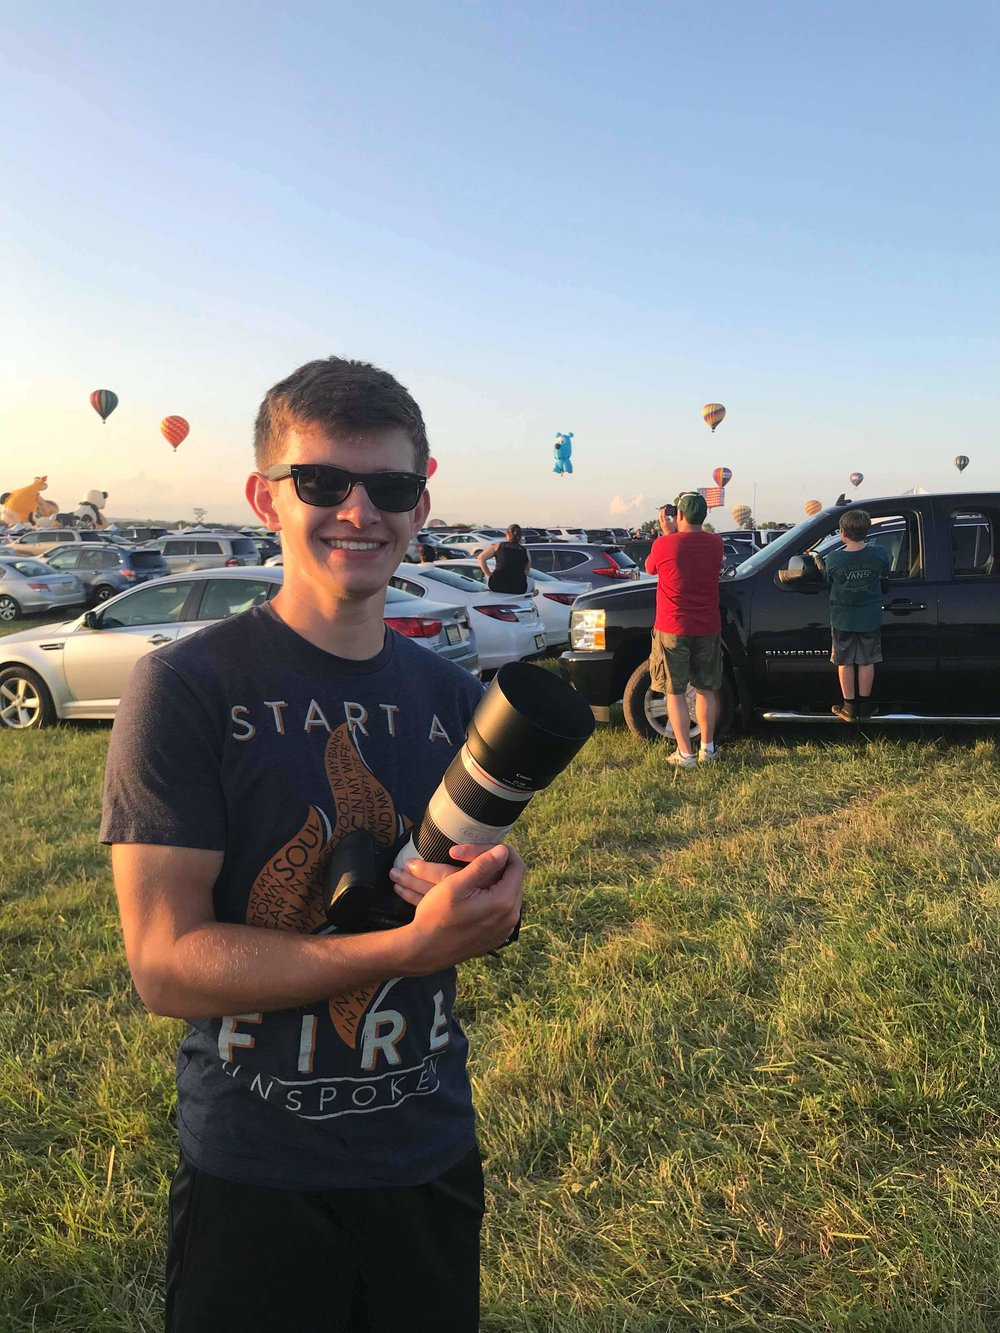 Me with bae at the 2018 Solberg Balloon Festival in Readington, New Jersey.